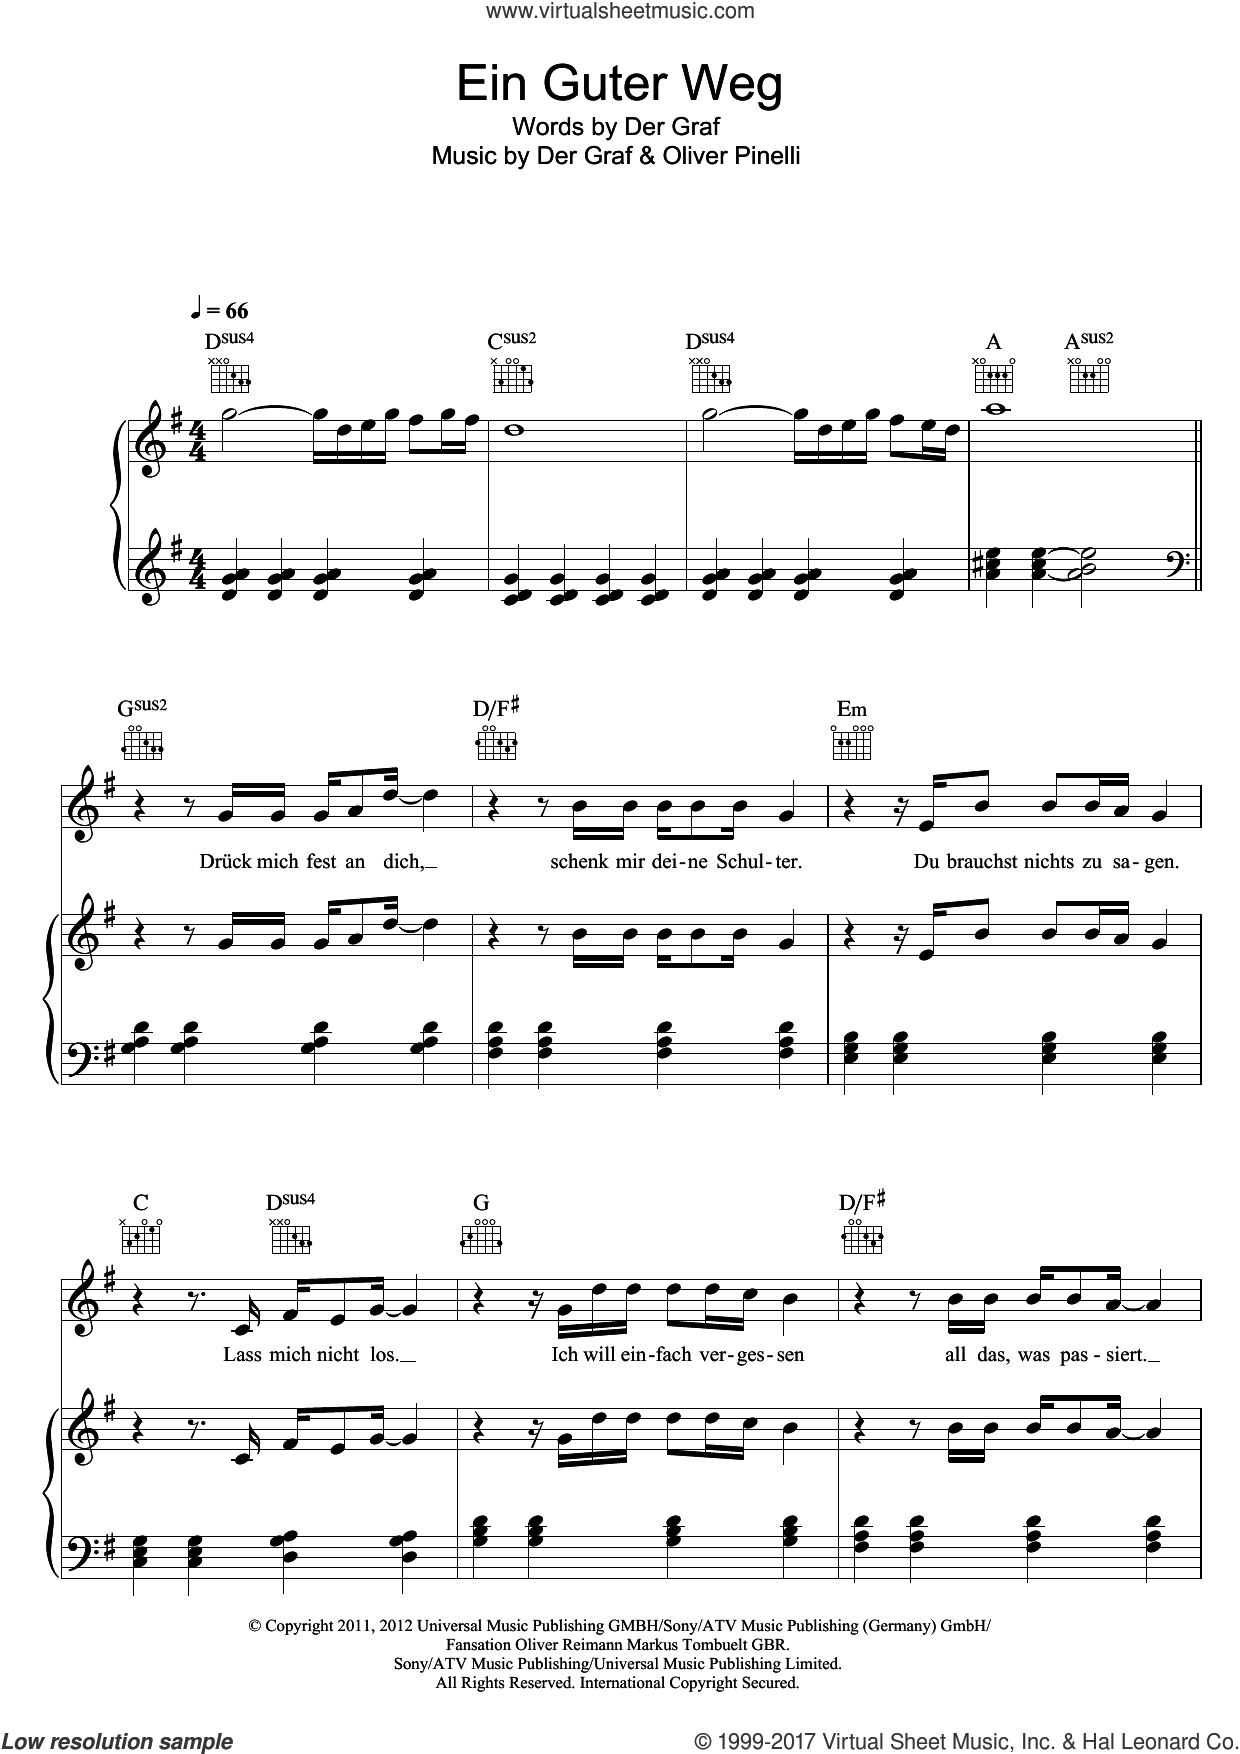 Ein Guter Weg sheet music for voice, piano or guitar by Unheilig, Der Graf and Oliver Pinelli, intermediate skill level